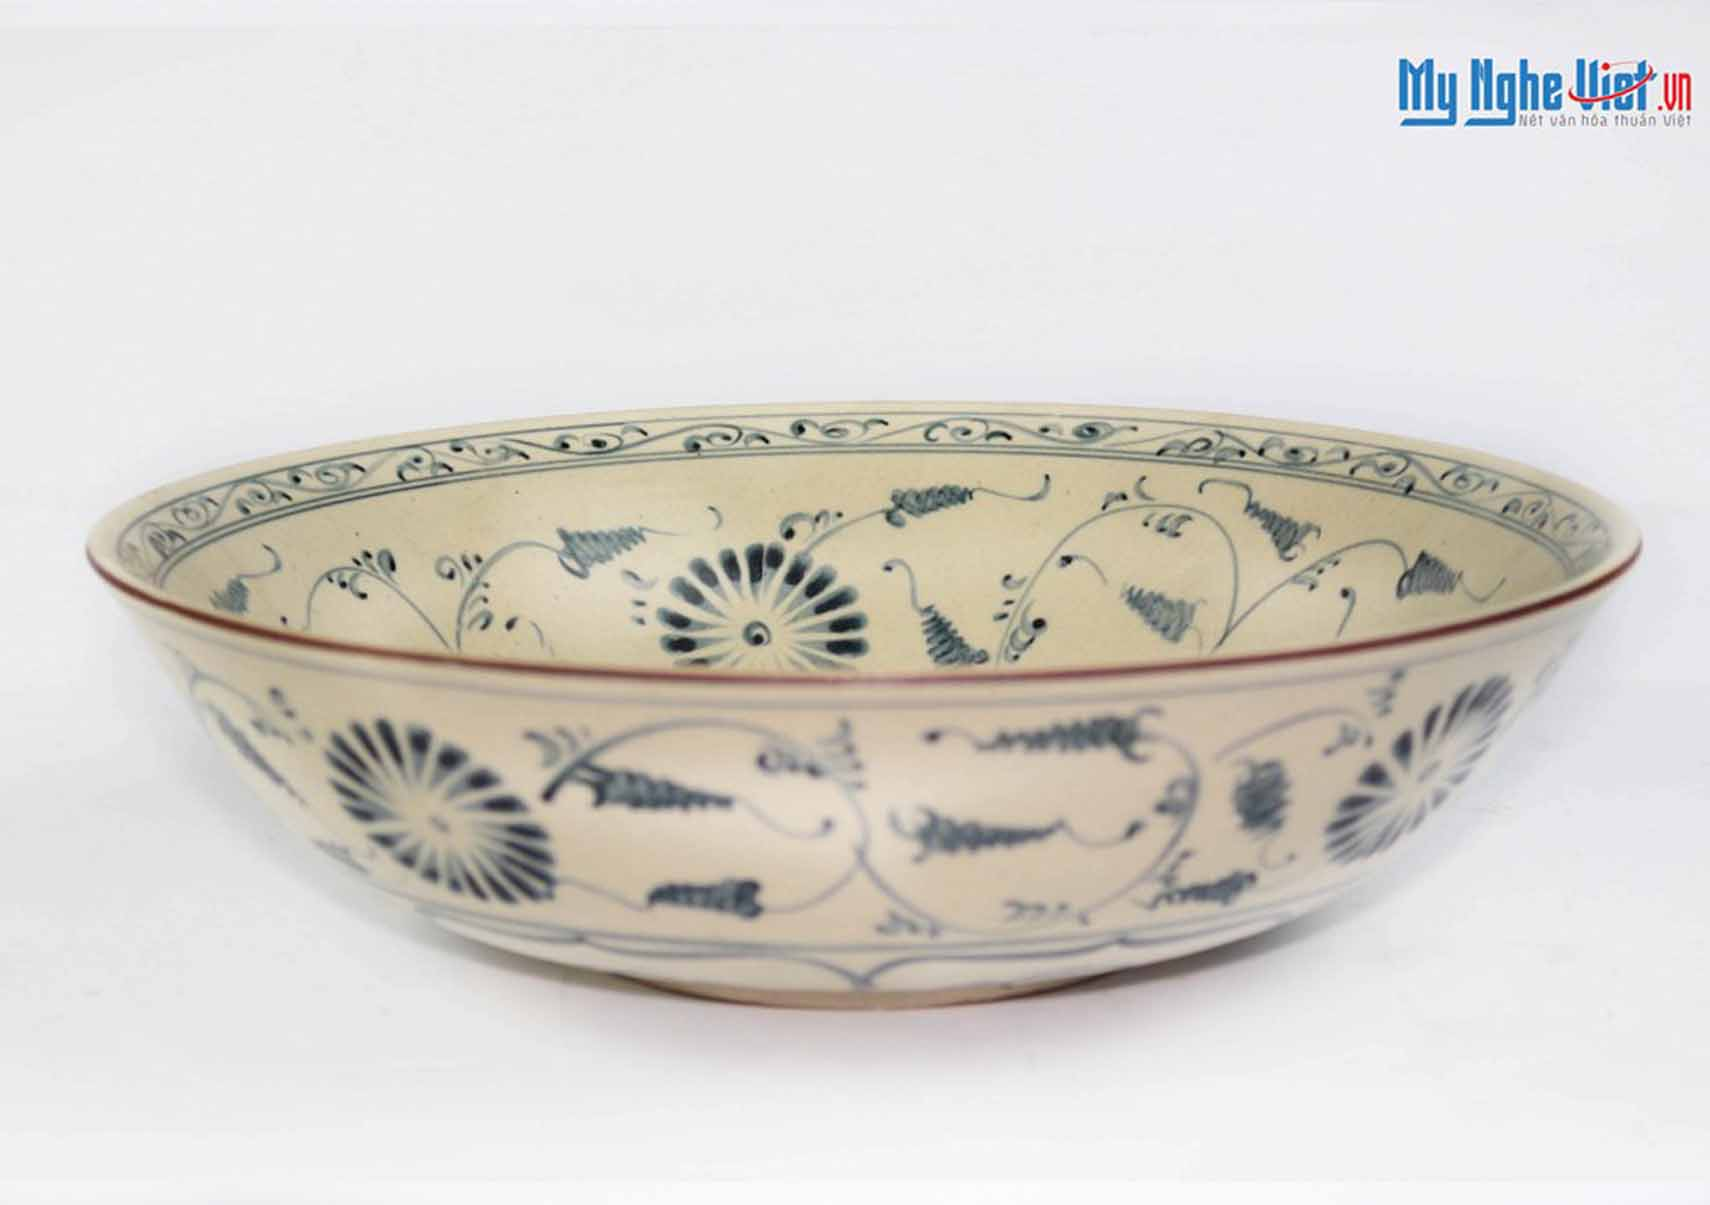 Bat Trang Pottery Bowl with Green Chrysanthemum Pattern MNV-BOA10-1